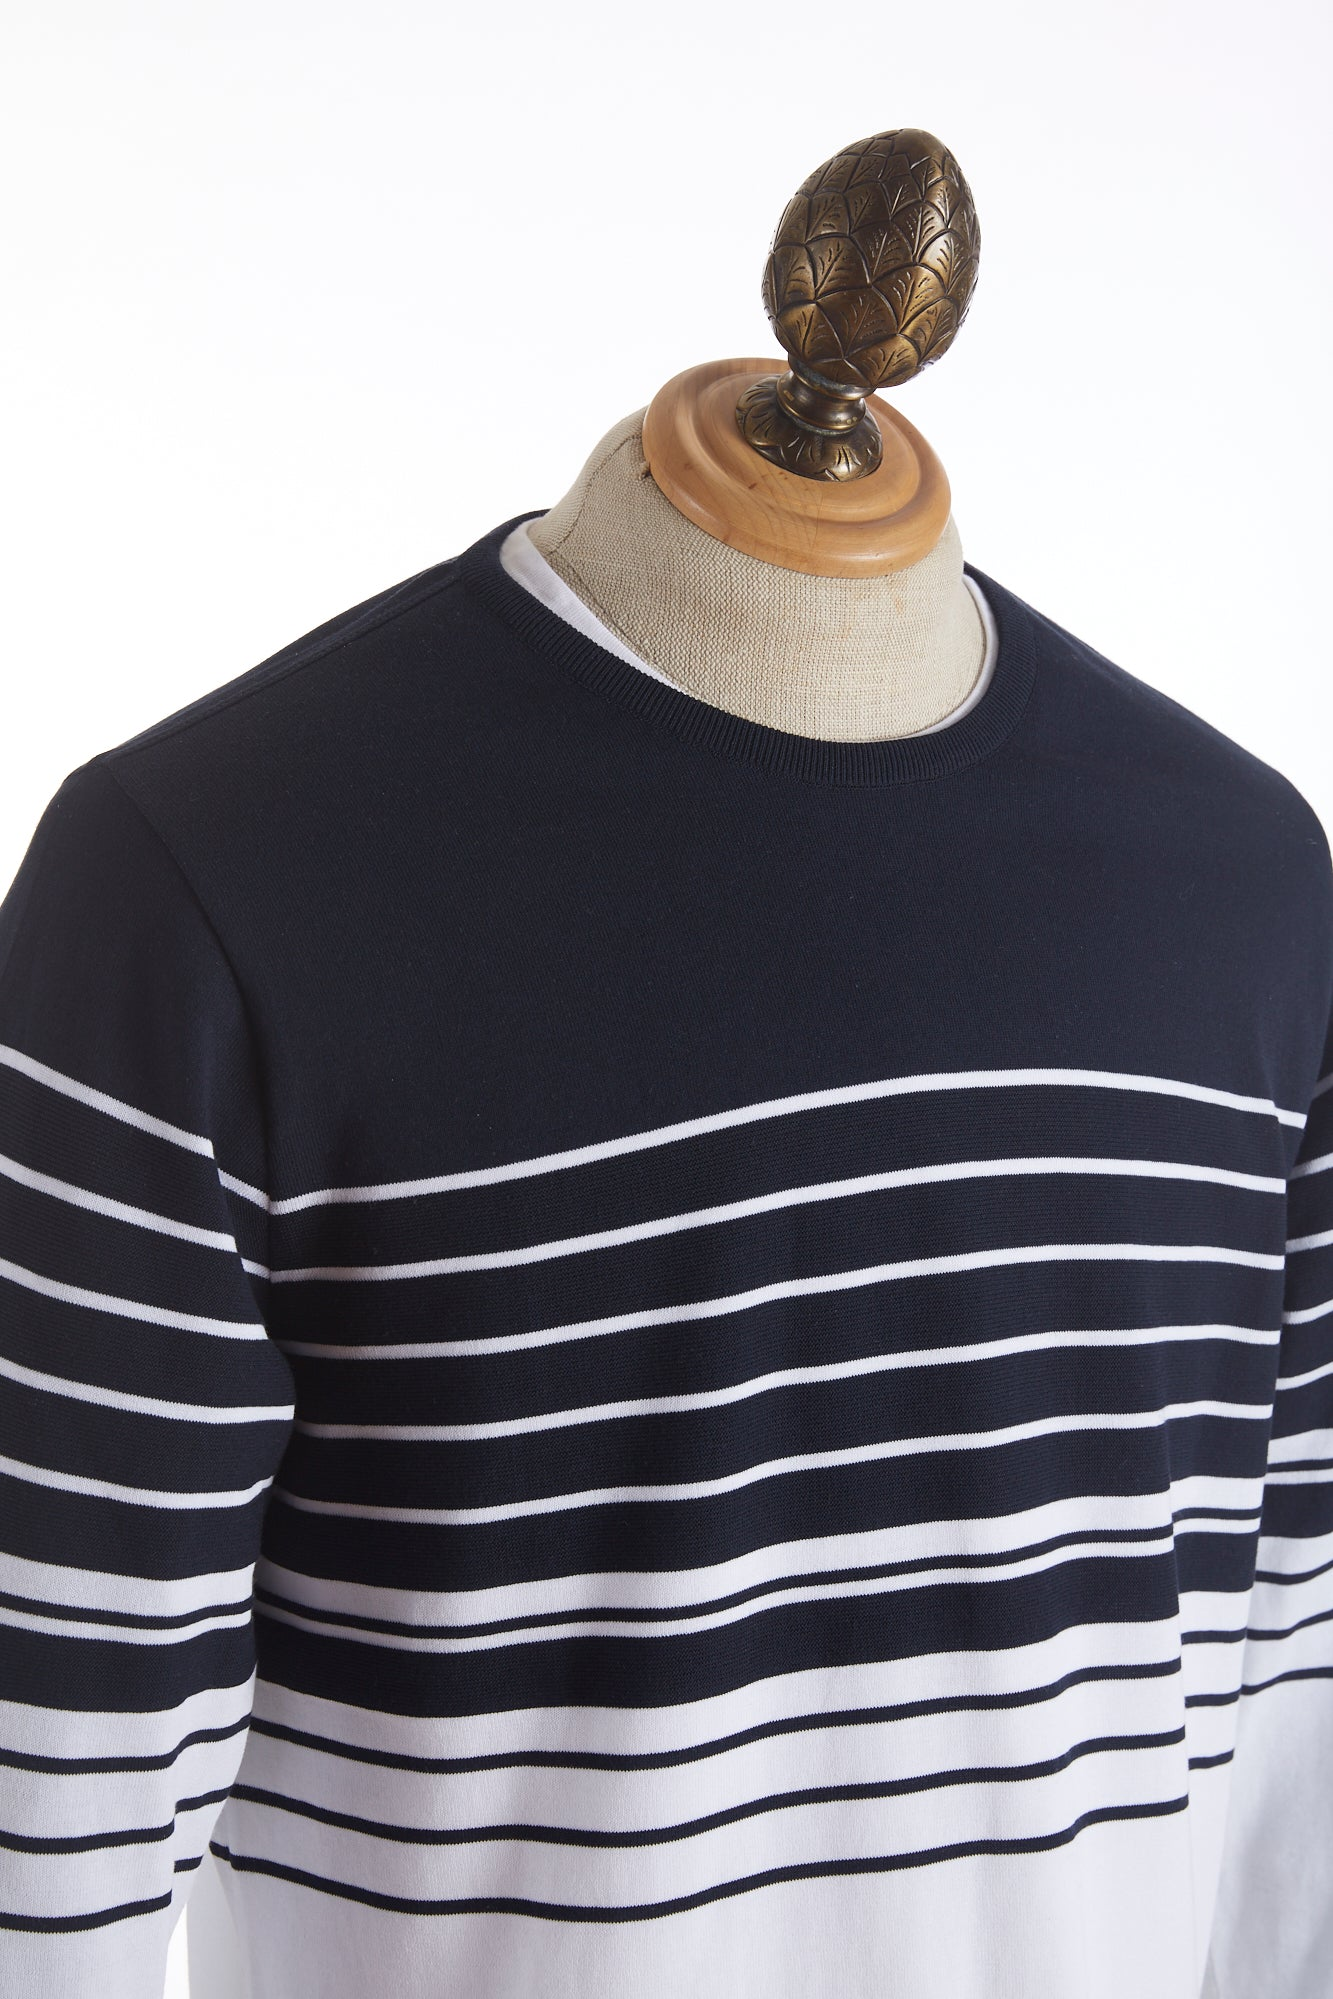 Paul and Shark Striped Ice Cool Crewneck Sweater